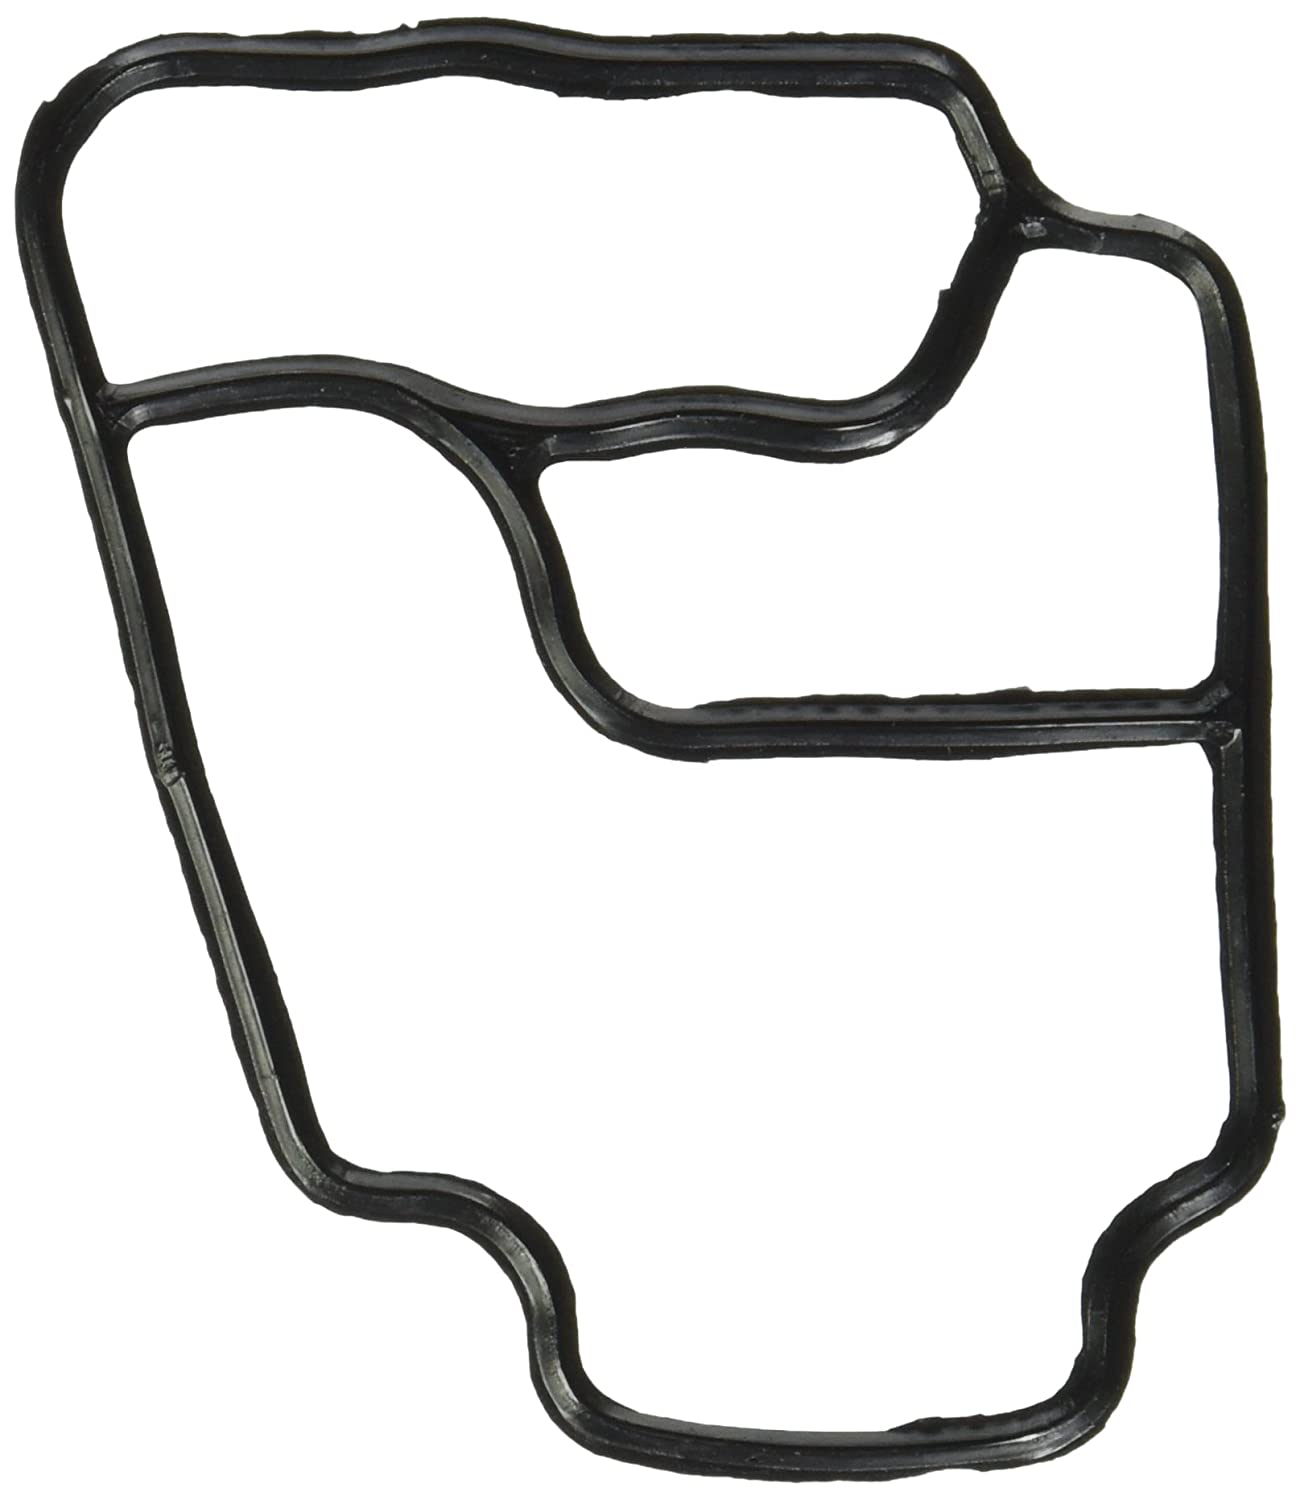 for BMW Models MTC 1638//11-42-1-719-855 Oil Filter Stand Gasket